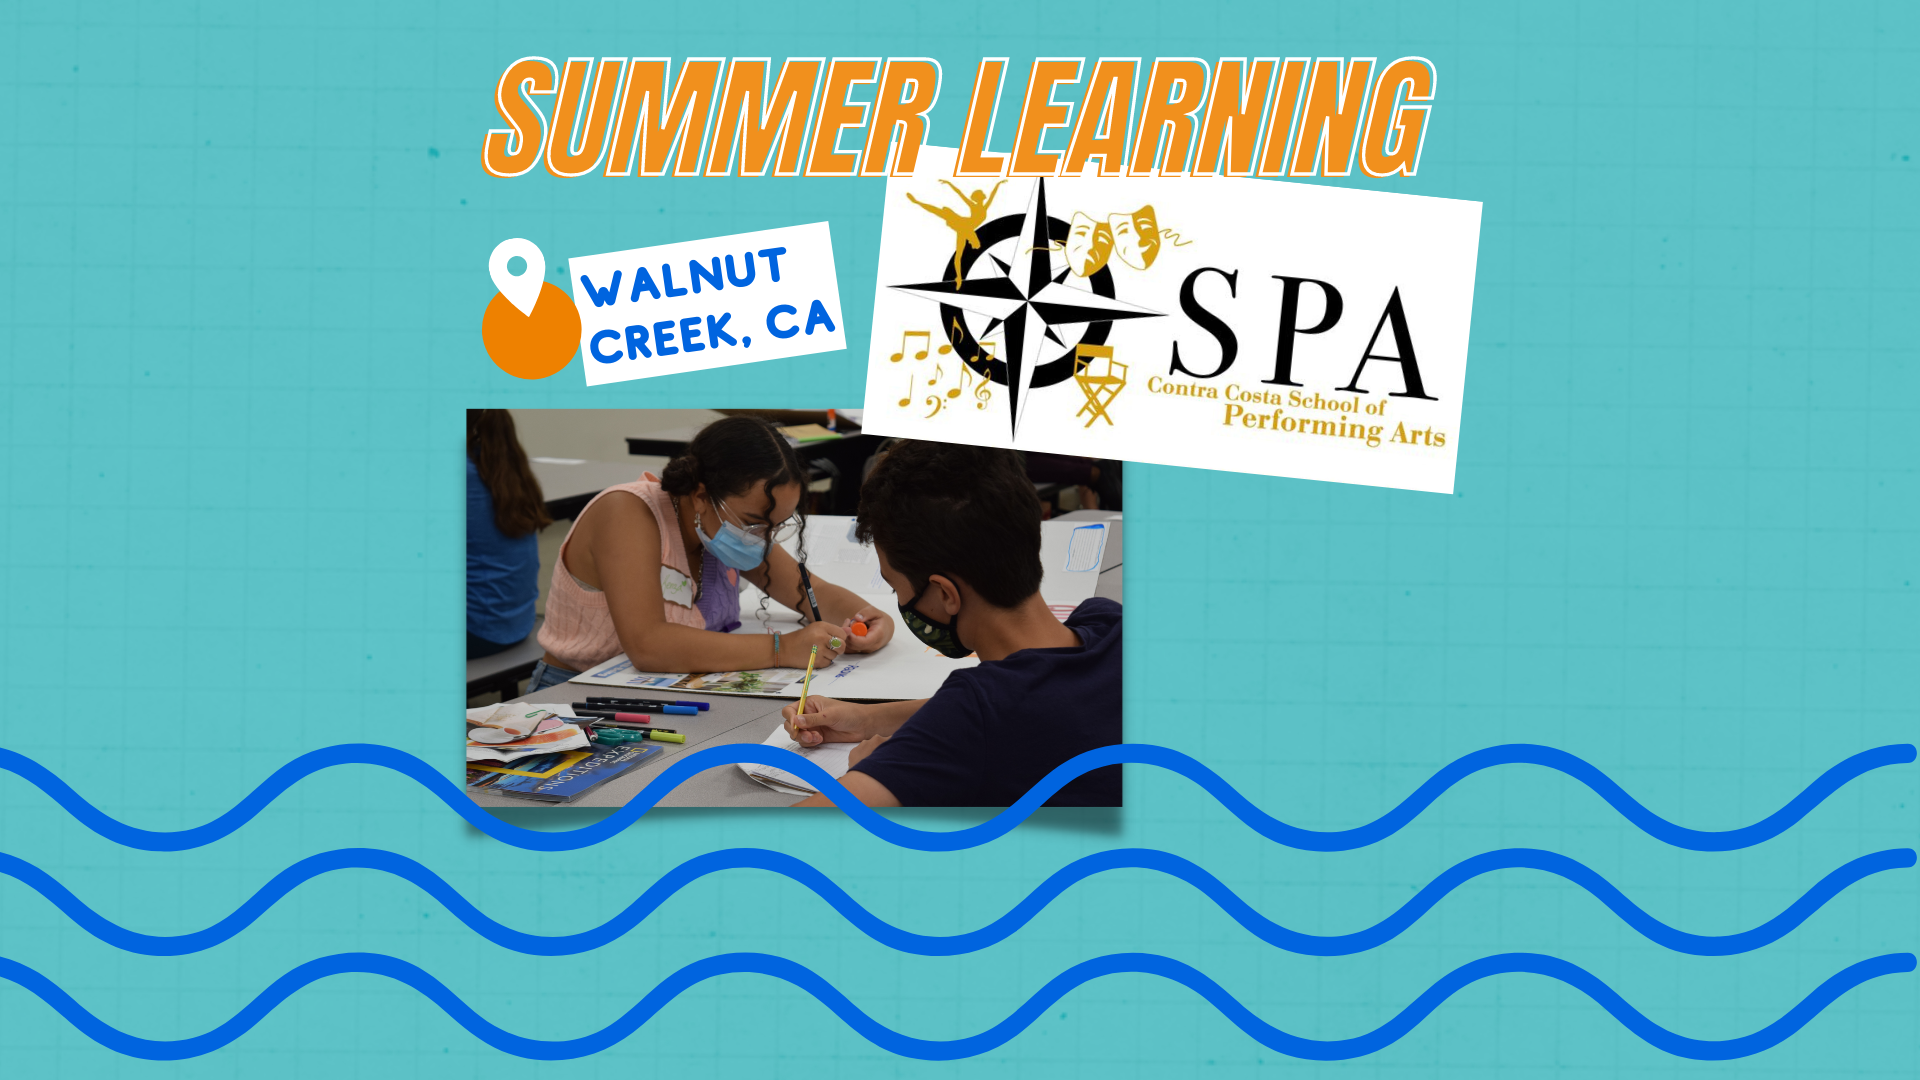 Contra Costa School of Performing Arts Blazes Trail With Health And Wellness Summer Program